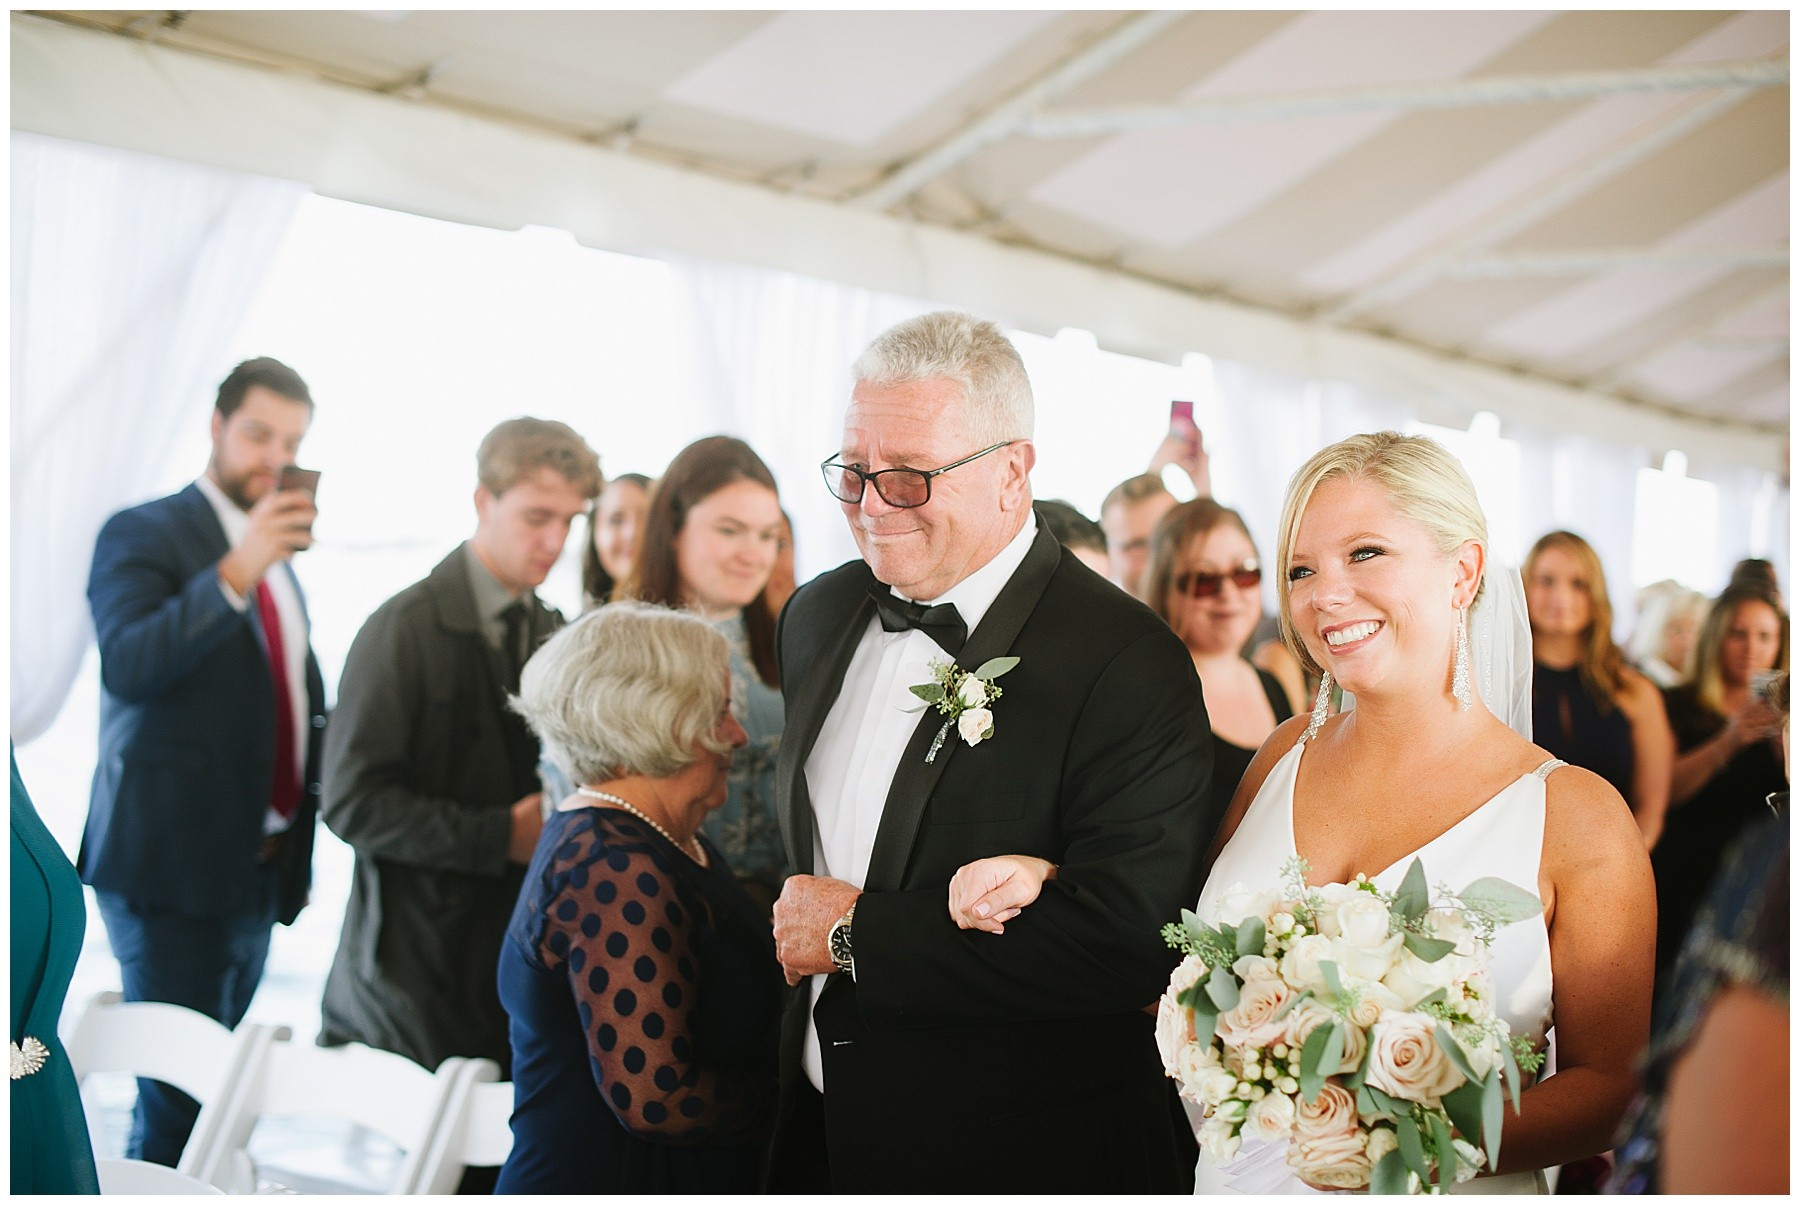 Mike and Jessica's Regatta Place Wedding | Newport, Rhode Island